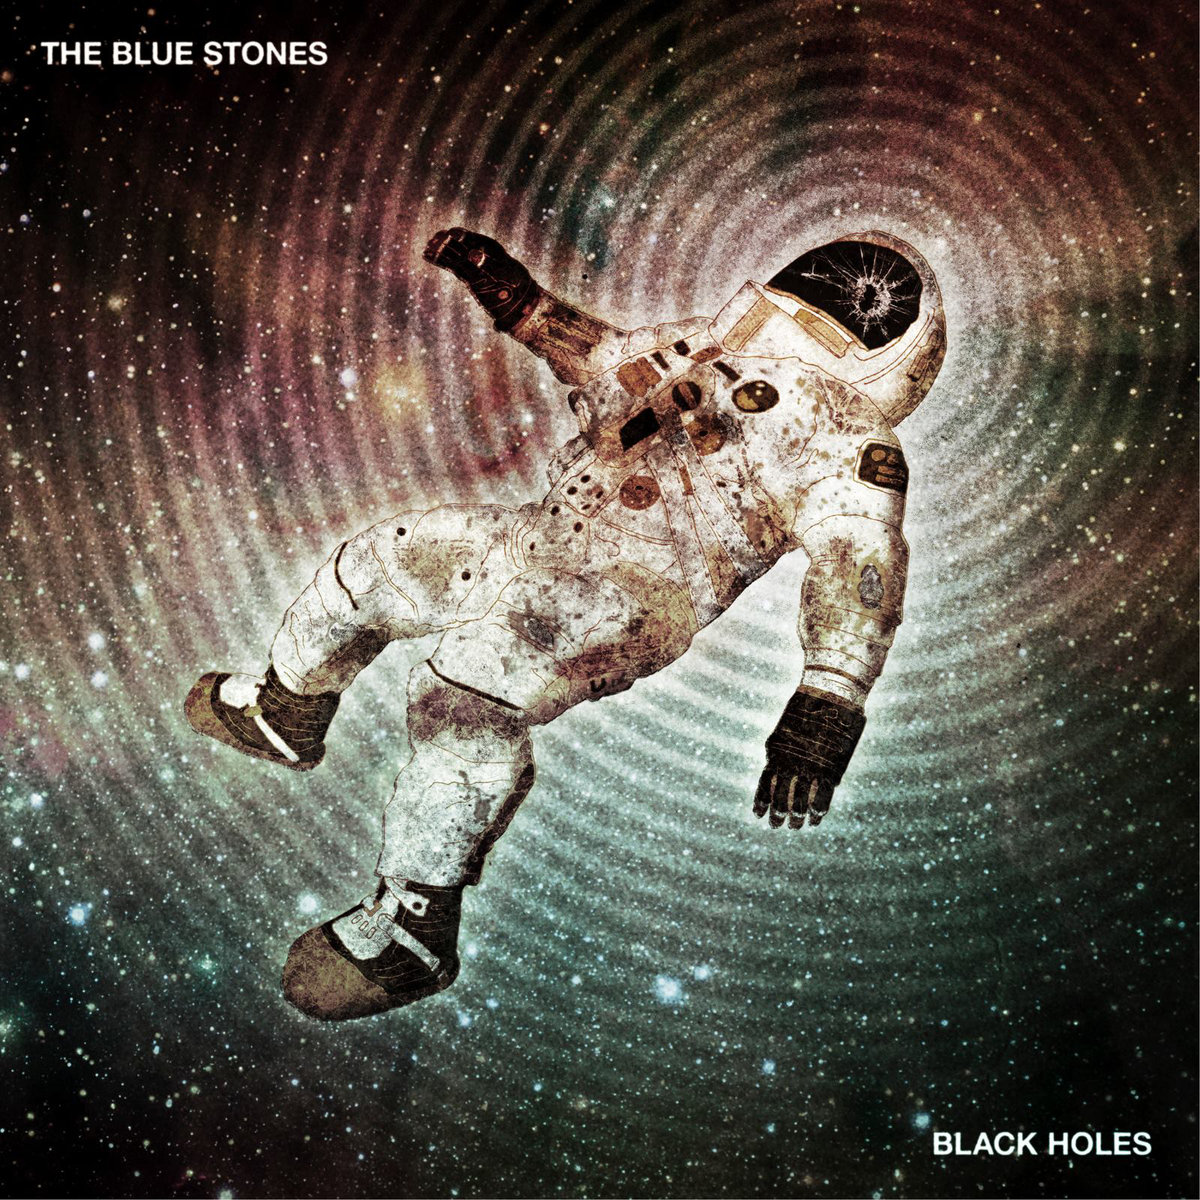 The Blue Stones - Lay @ 'BLACK HOLES' album (alternative, blues)